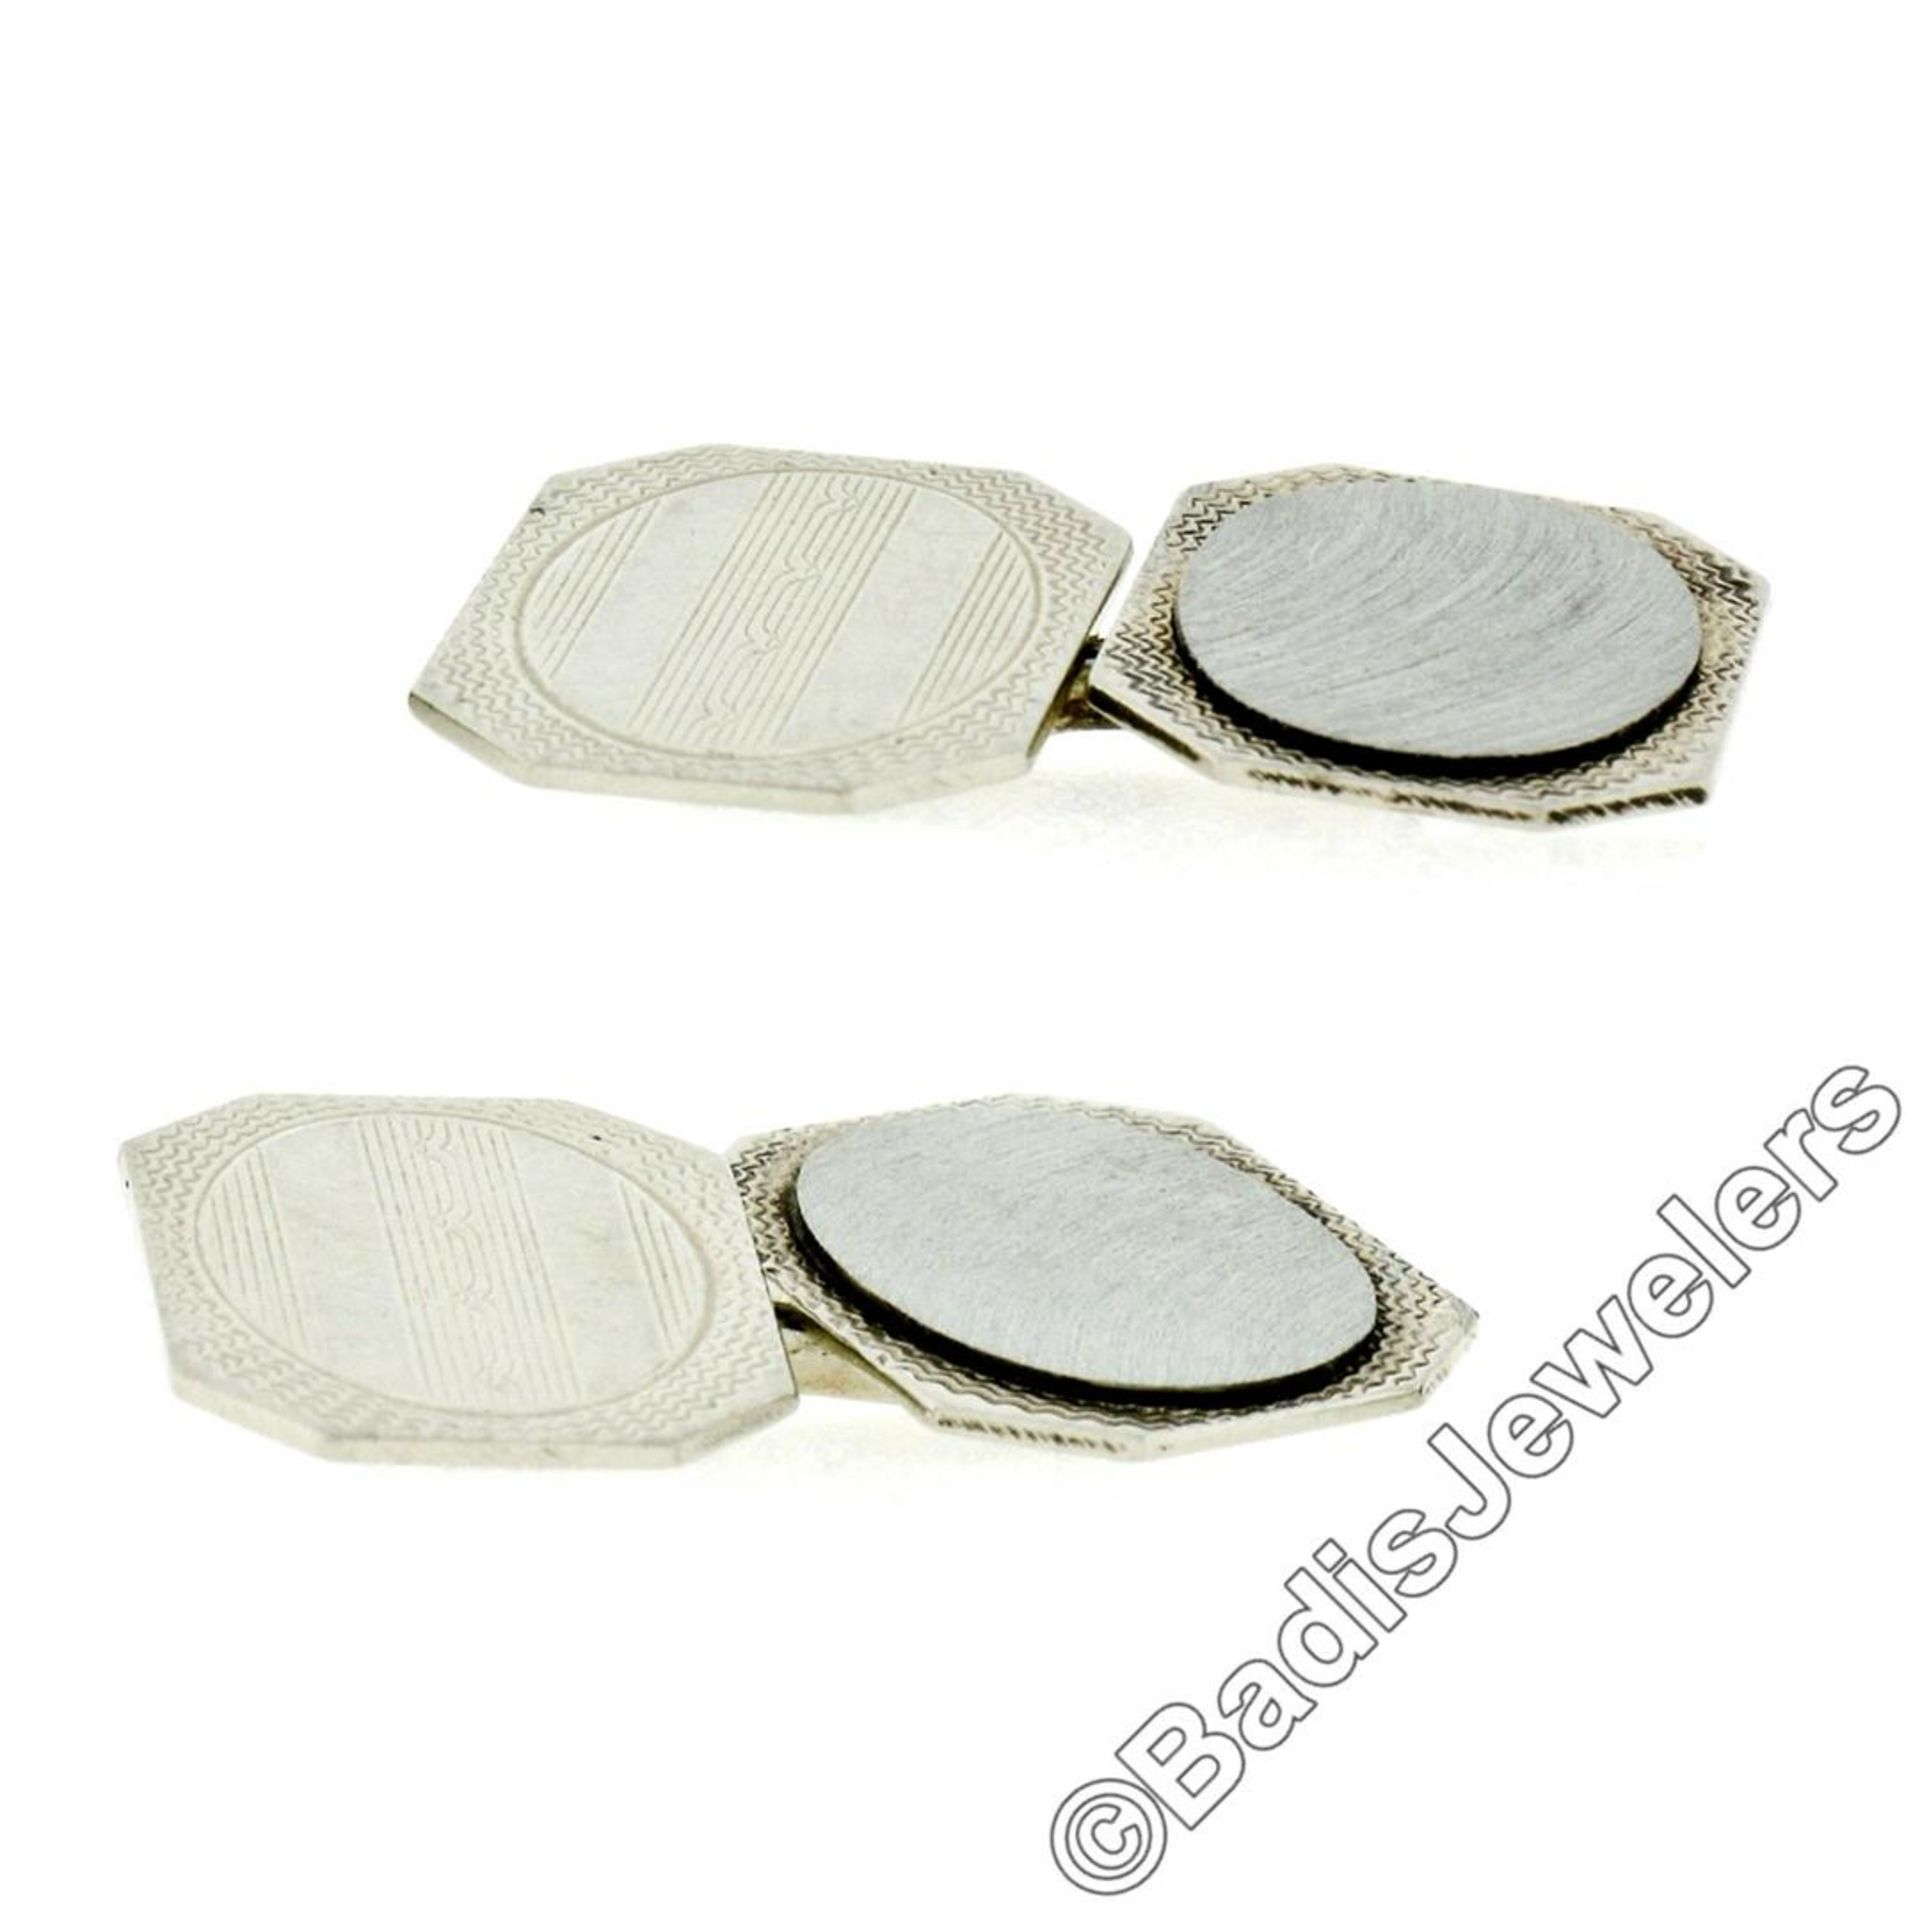 Antique Art Deco 14kt White Gold Etched Dual Panel Cuff Links - Image 3 of 5